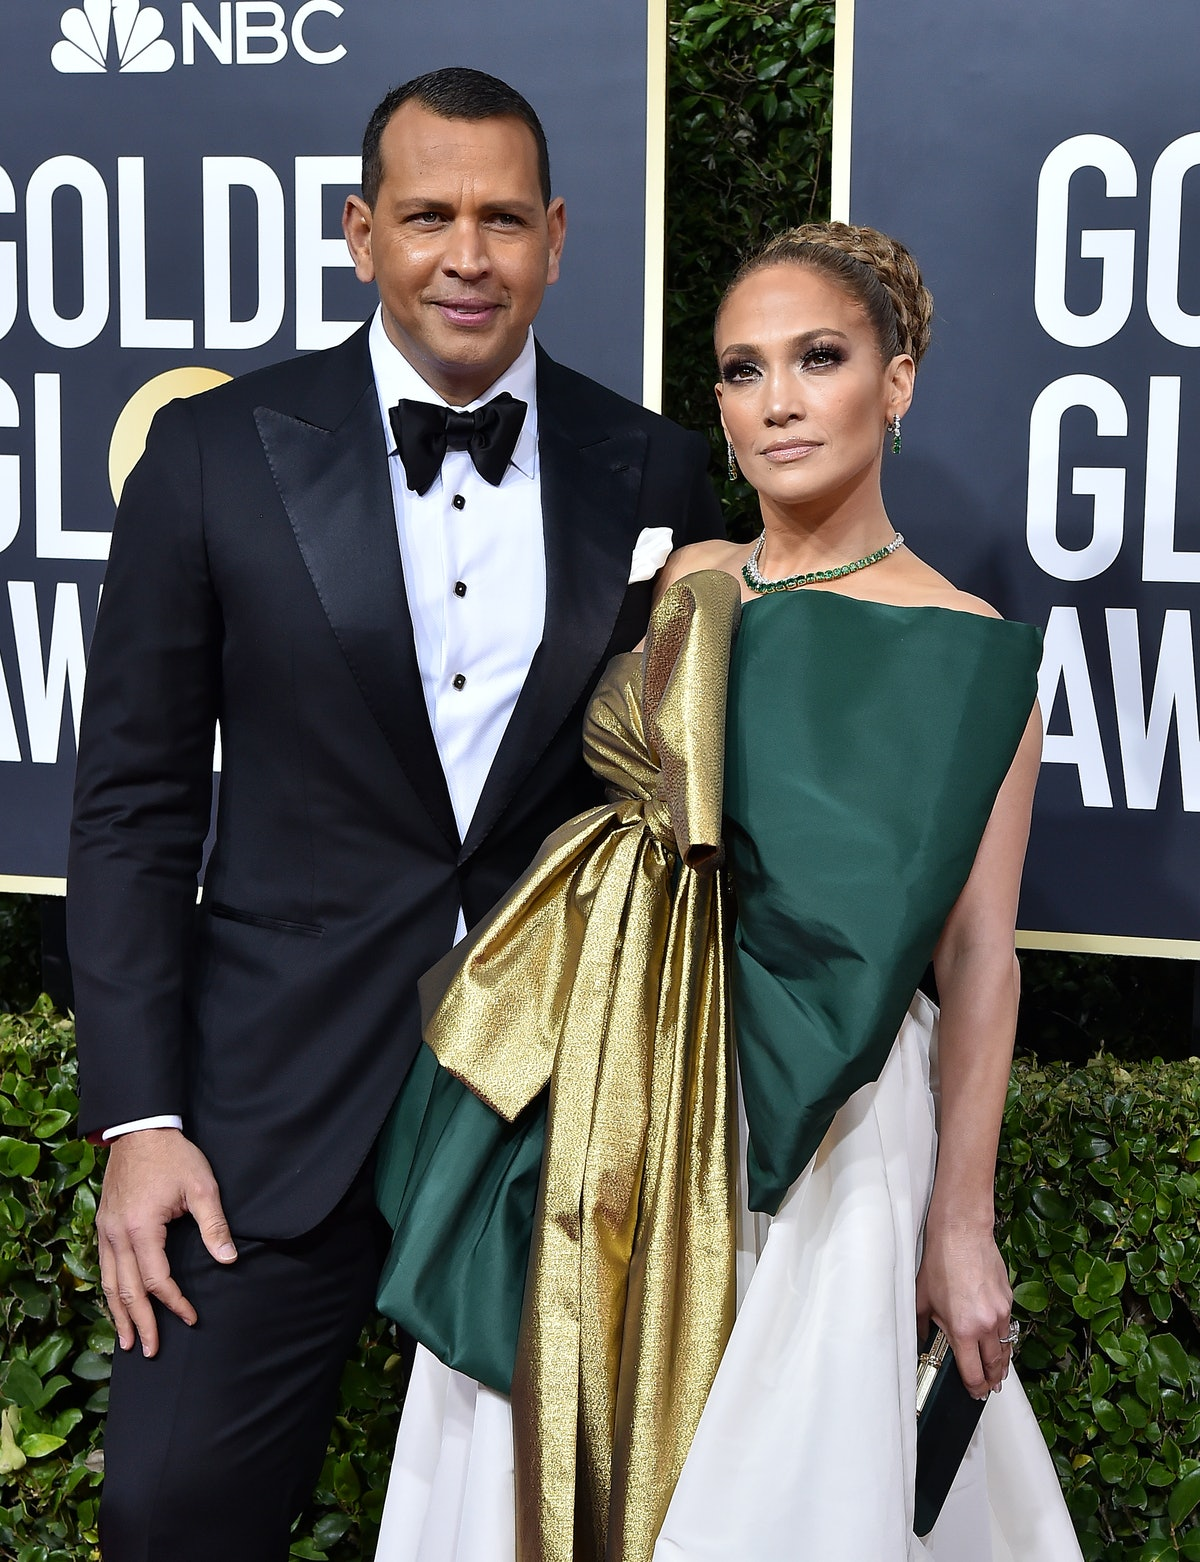 BEVERLY HILLS, CALIFORNIA - JANUARY 05: Alex Rodriguez and Jennifer Lopez attend the 77th Annual Gol...